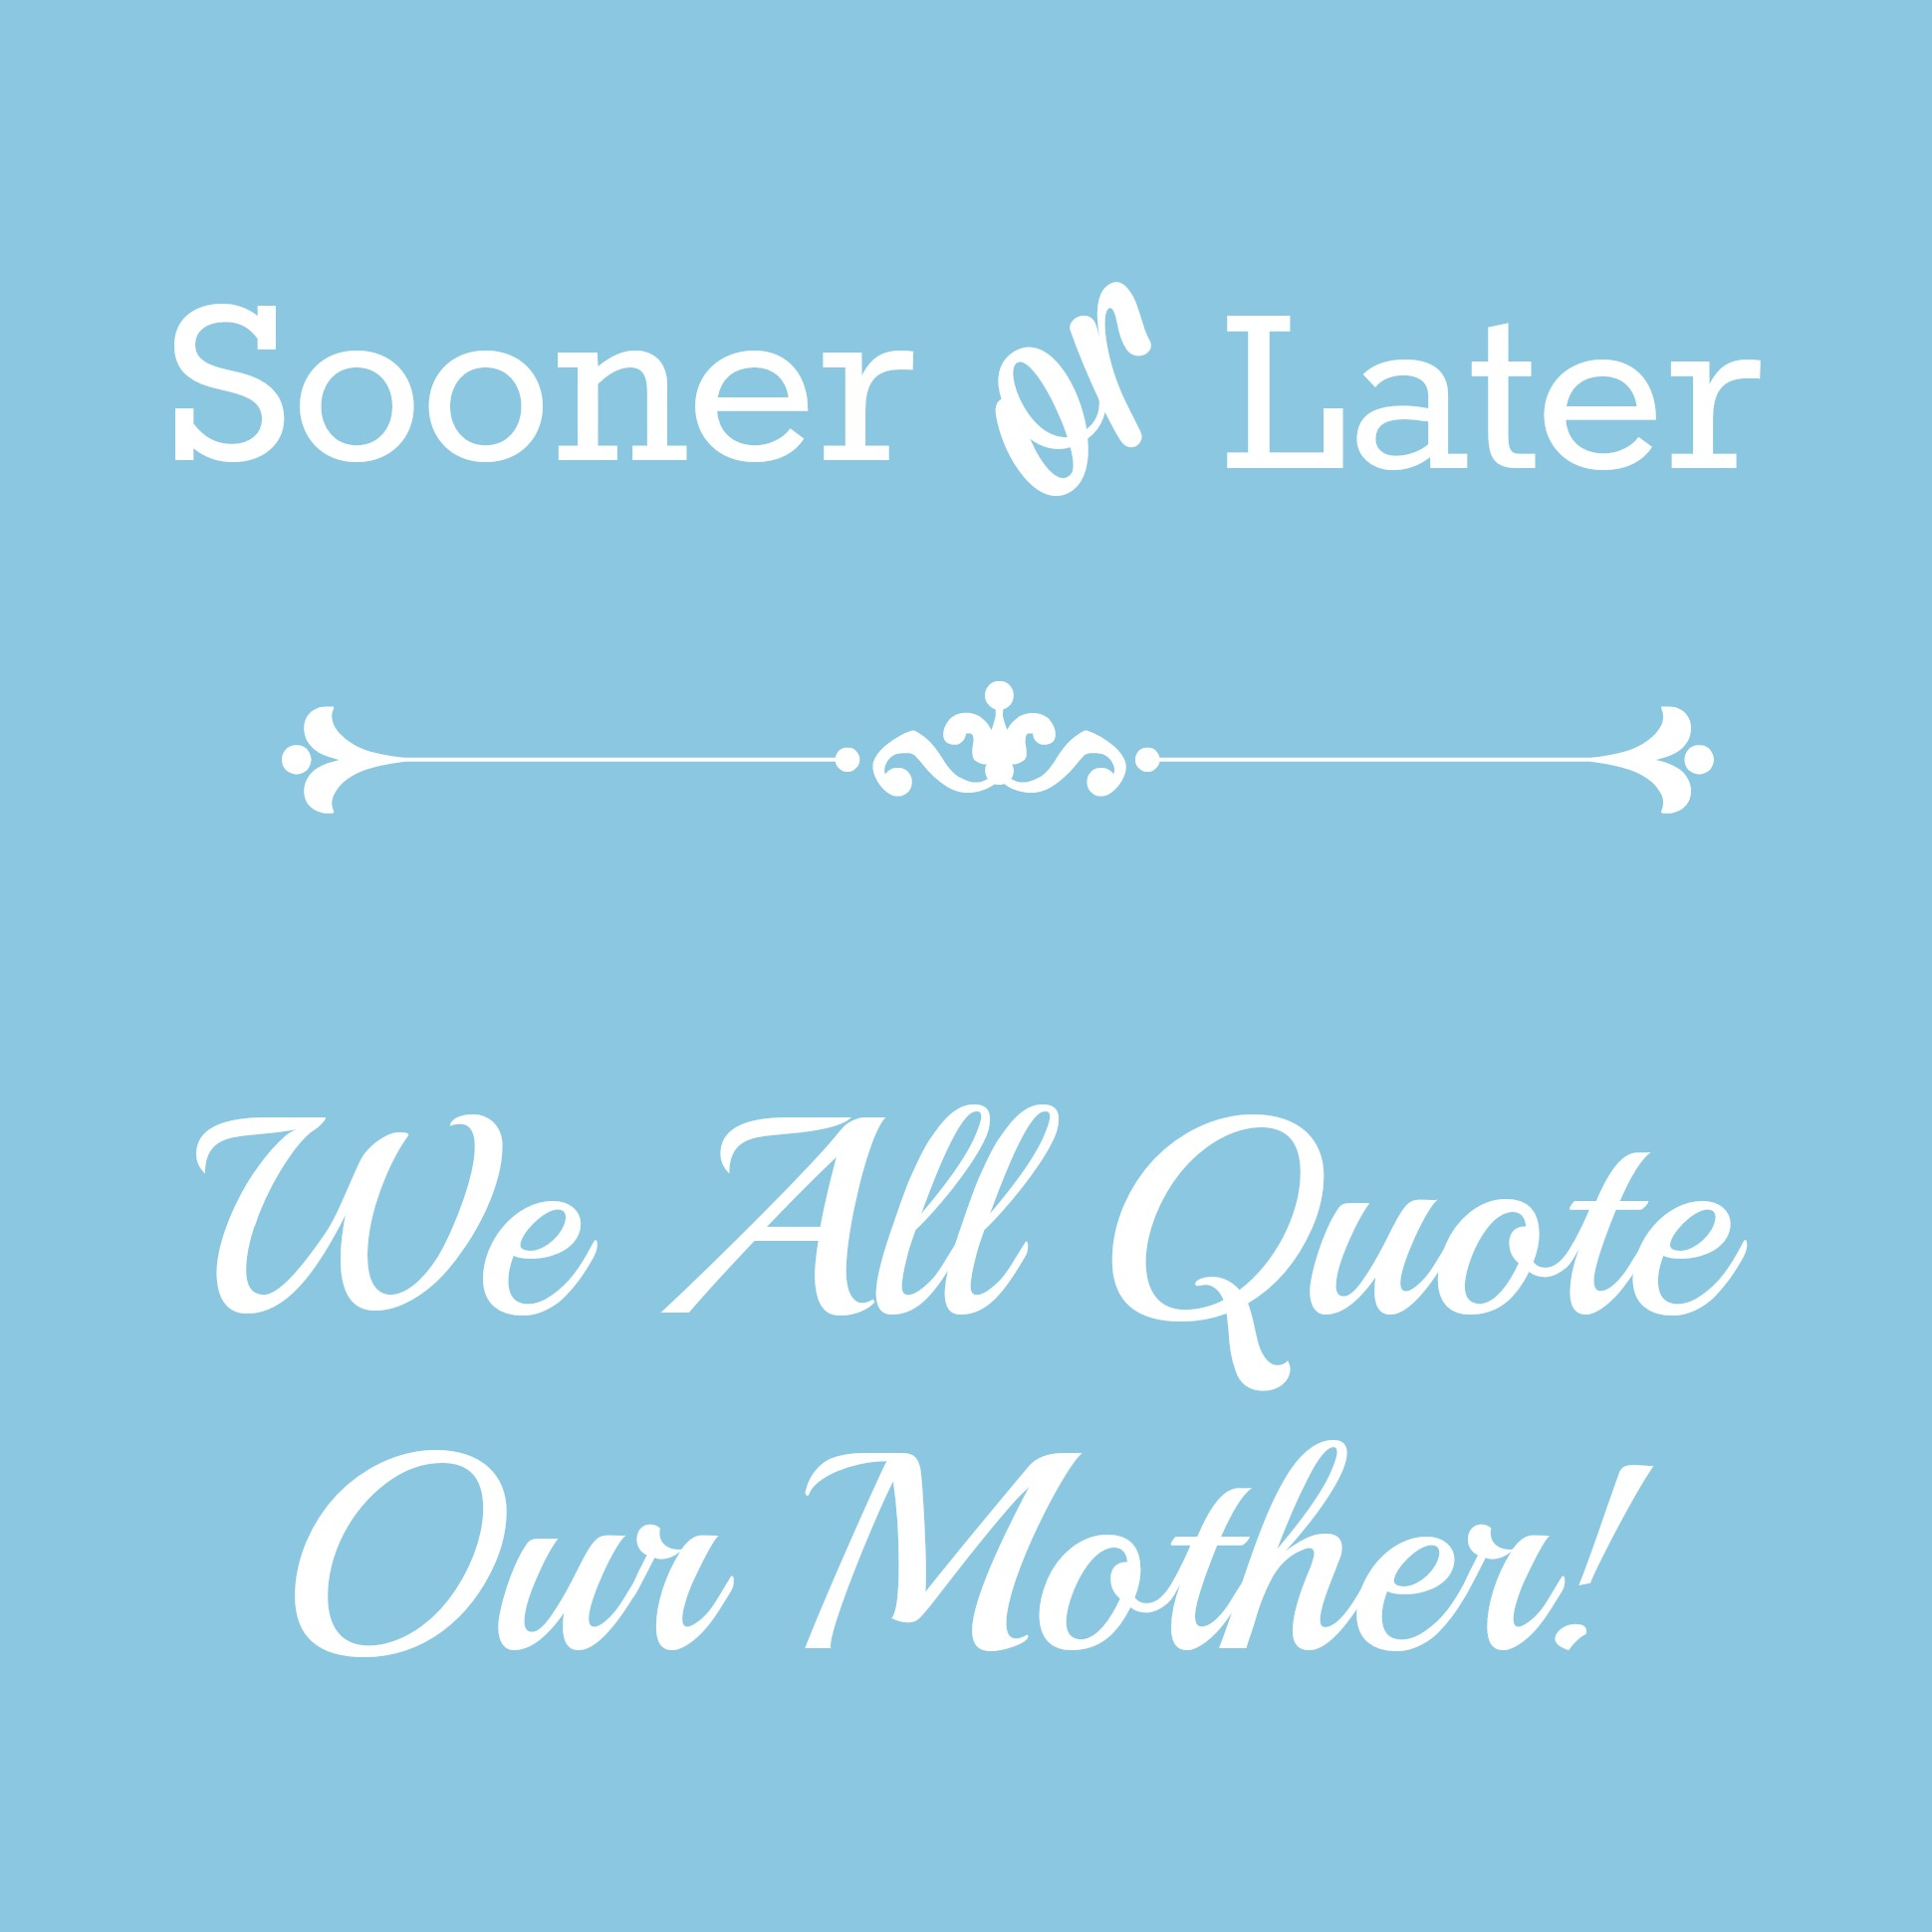 25 Happy Mothers Day Quotes From Son 2018